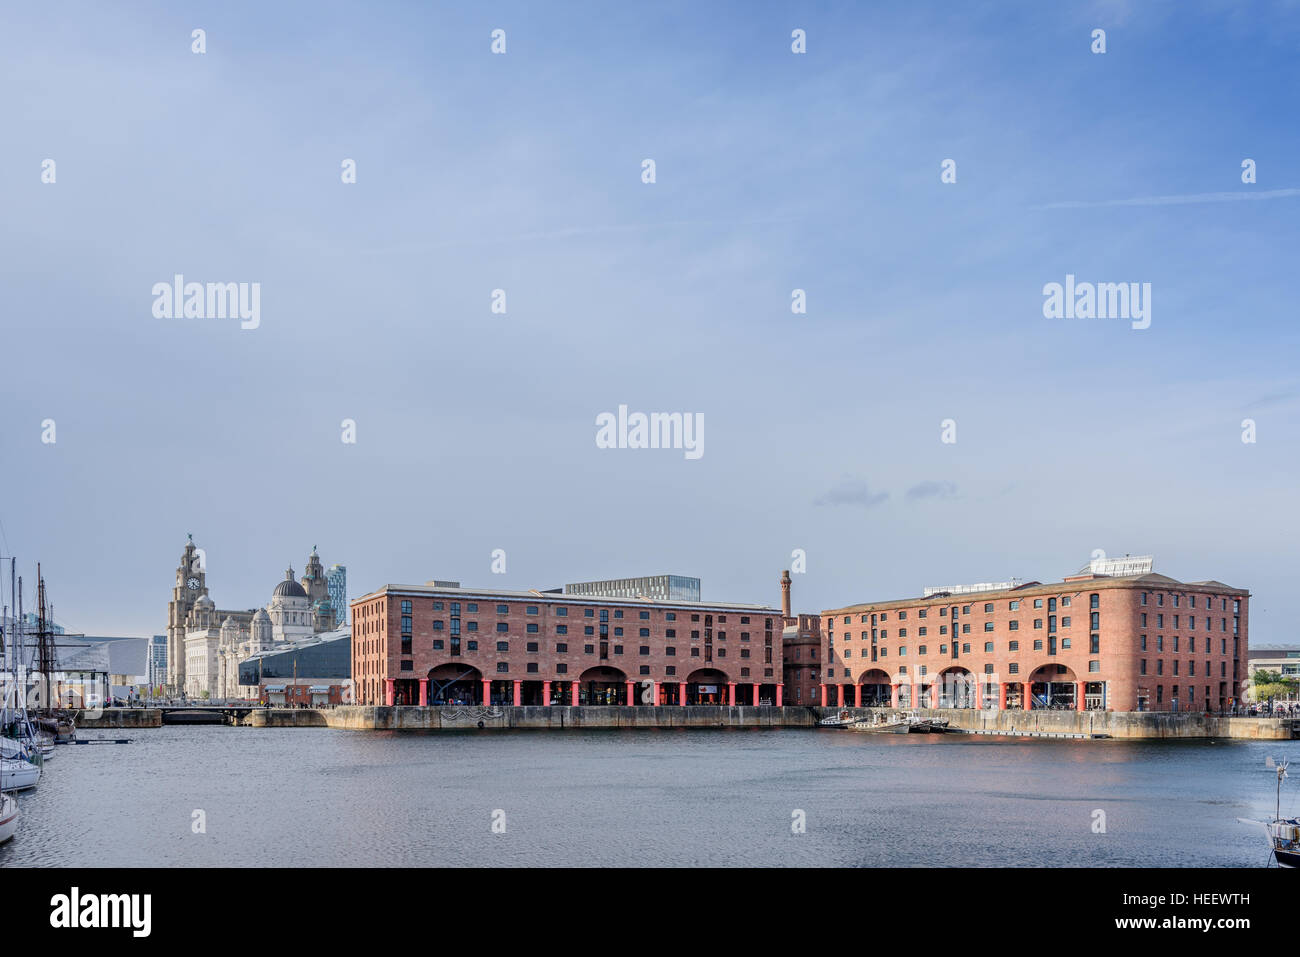 The Albert Dock is a complex of dock buildings and warehouses in Liverpool, England. - Stock Image